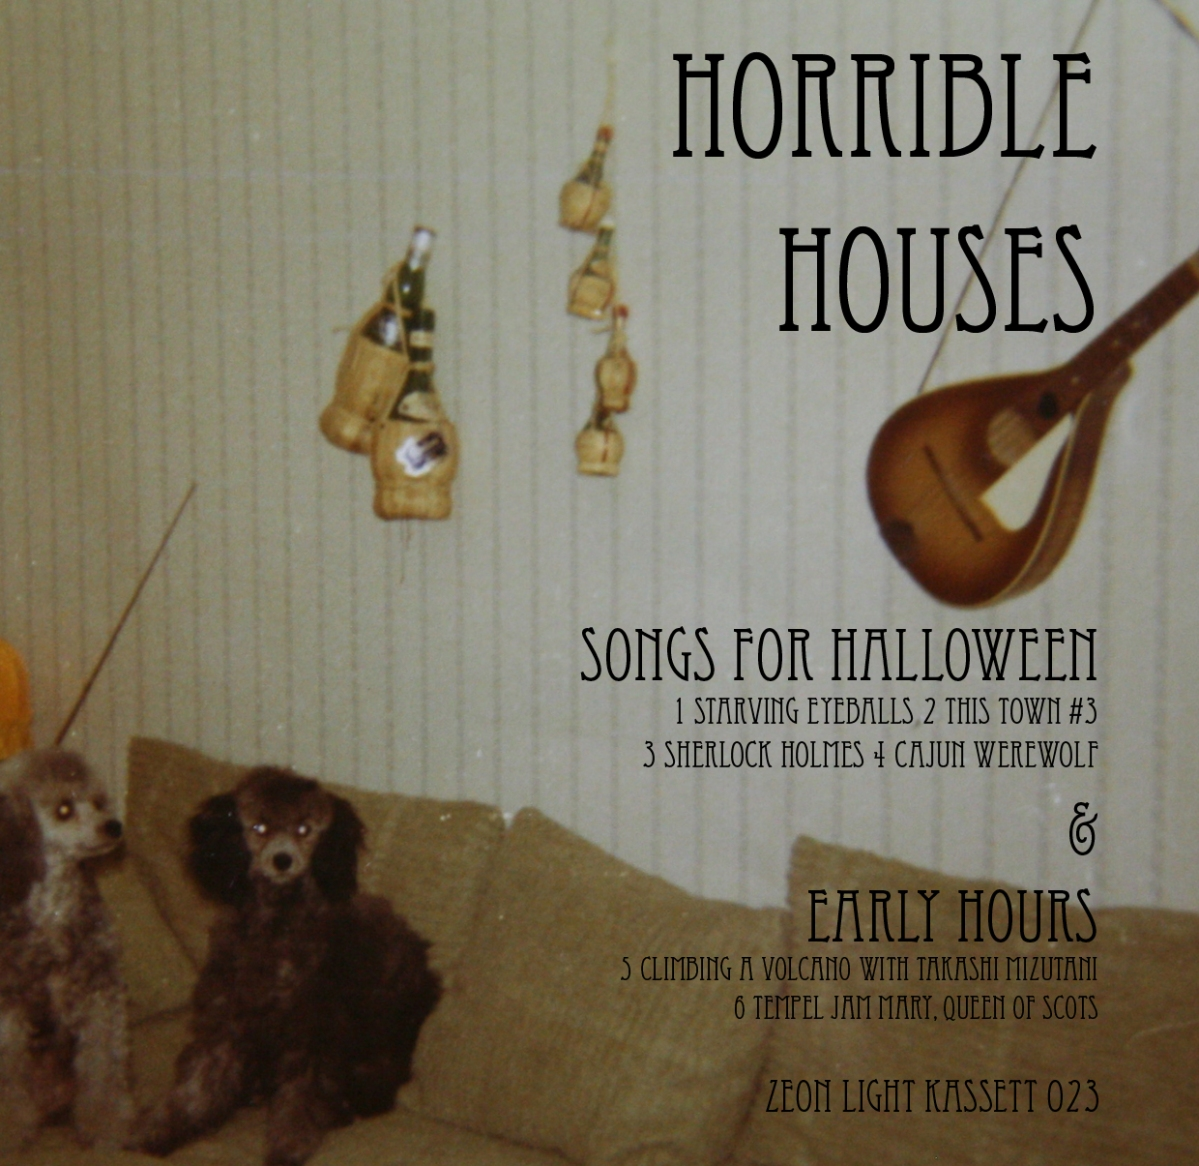 horrible houses - songs for halloween & early hours zlk023